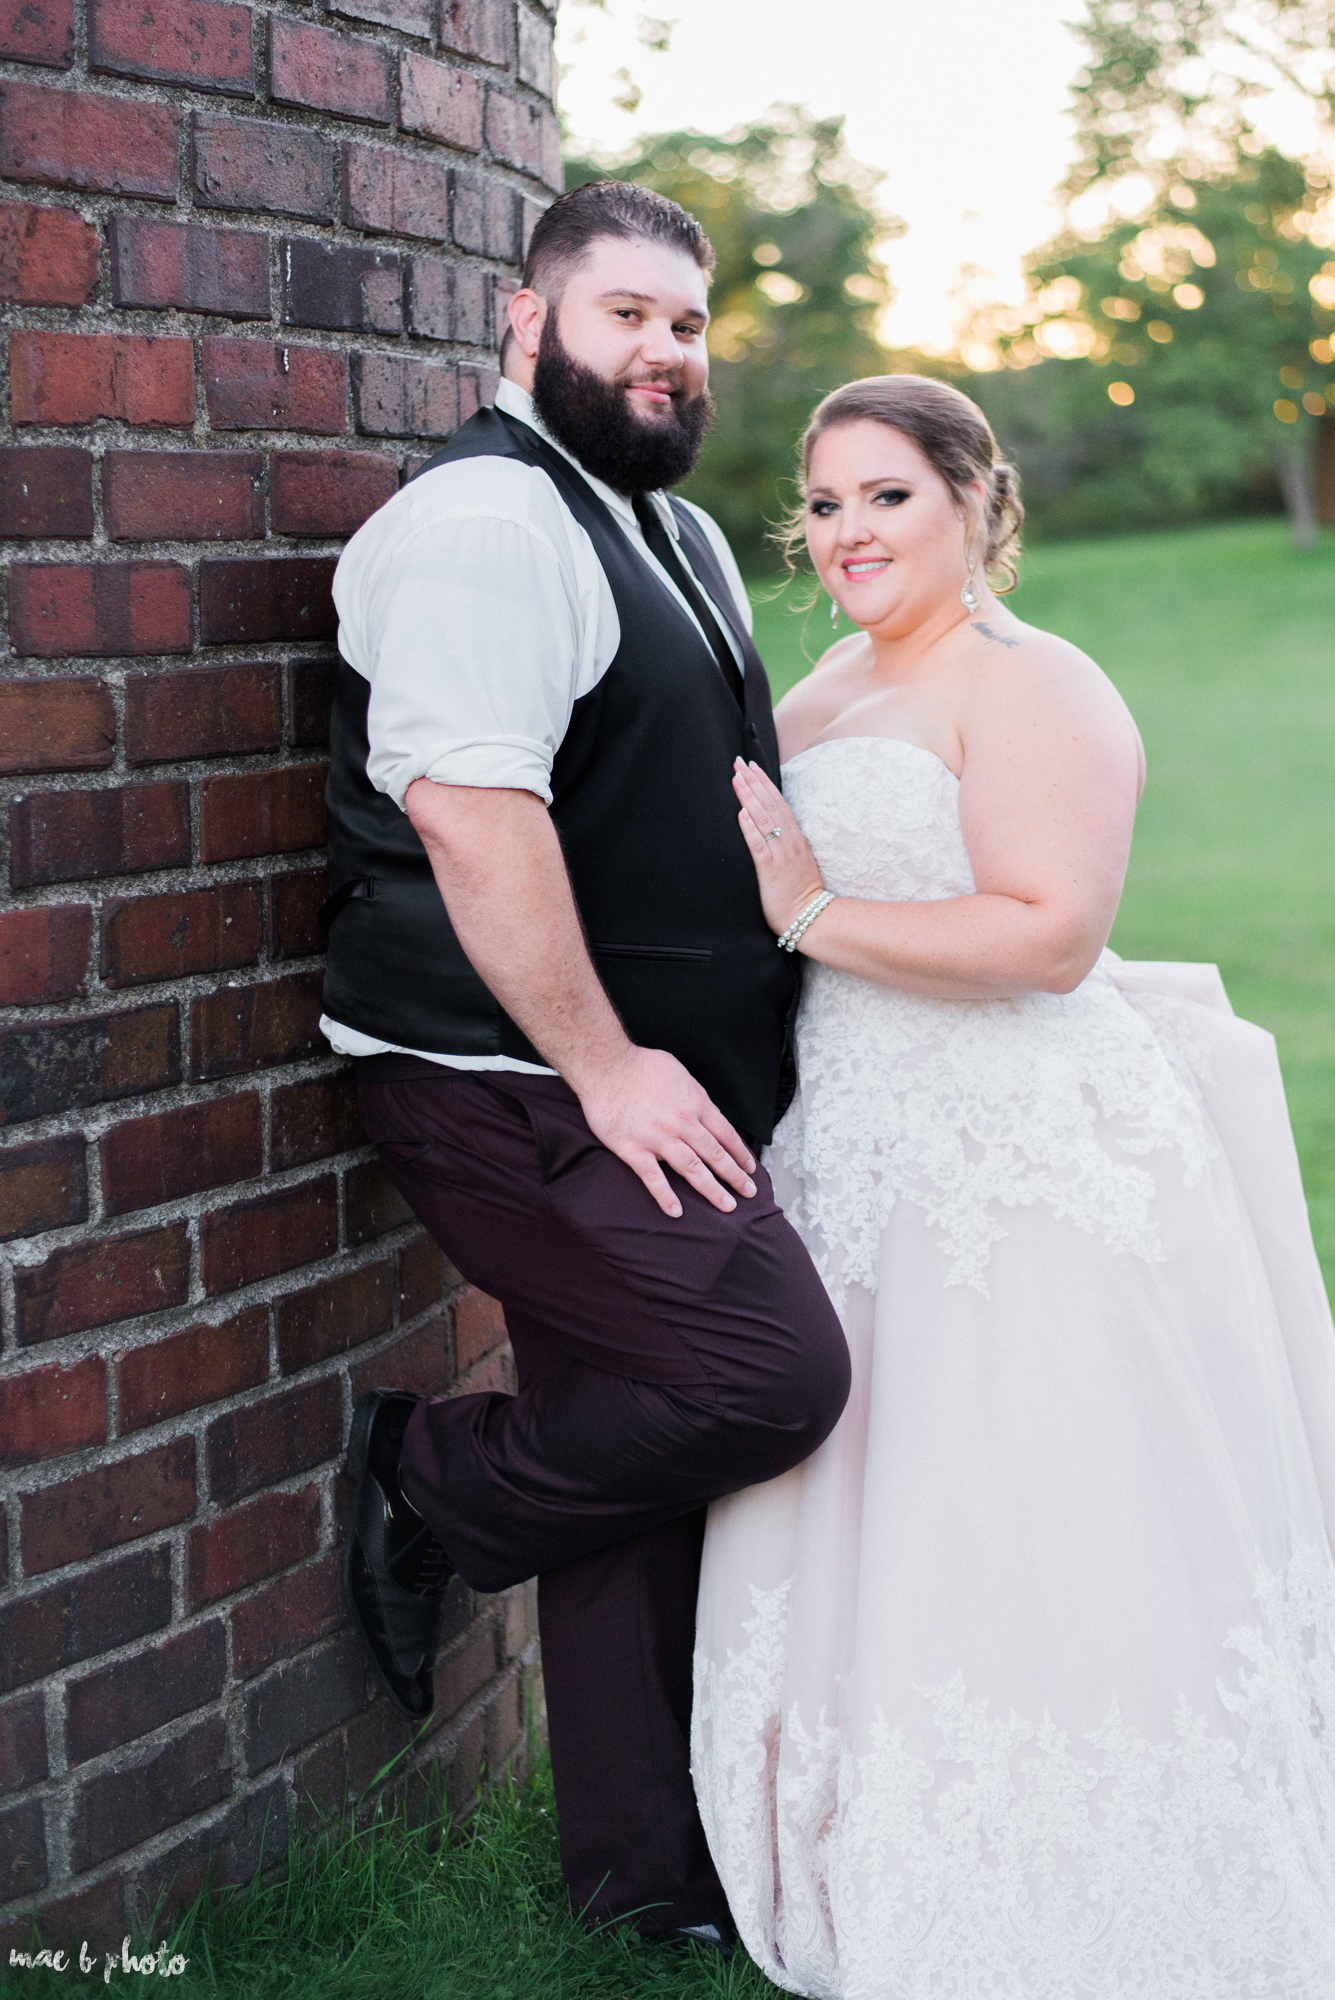 Amber & Kyle's Intimate Rustic Fall Barn Wedding at SNPJ in Enon Valley, PA Photographed by Mae B Photo-3.jpg